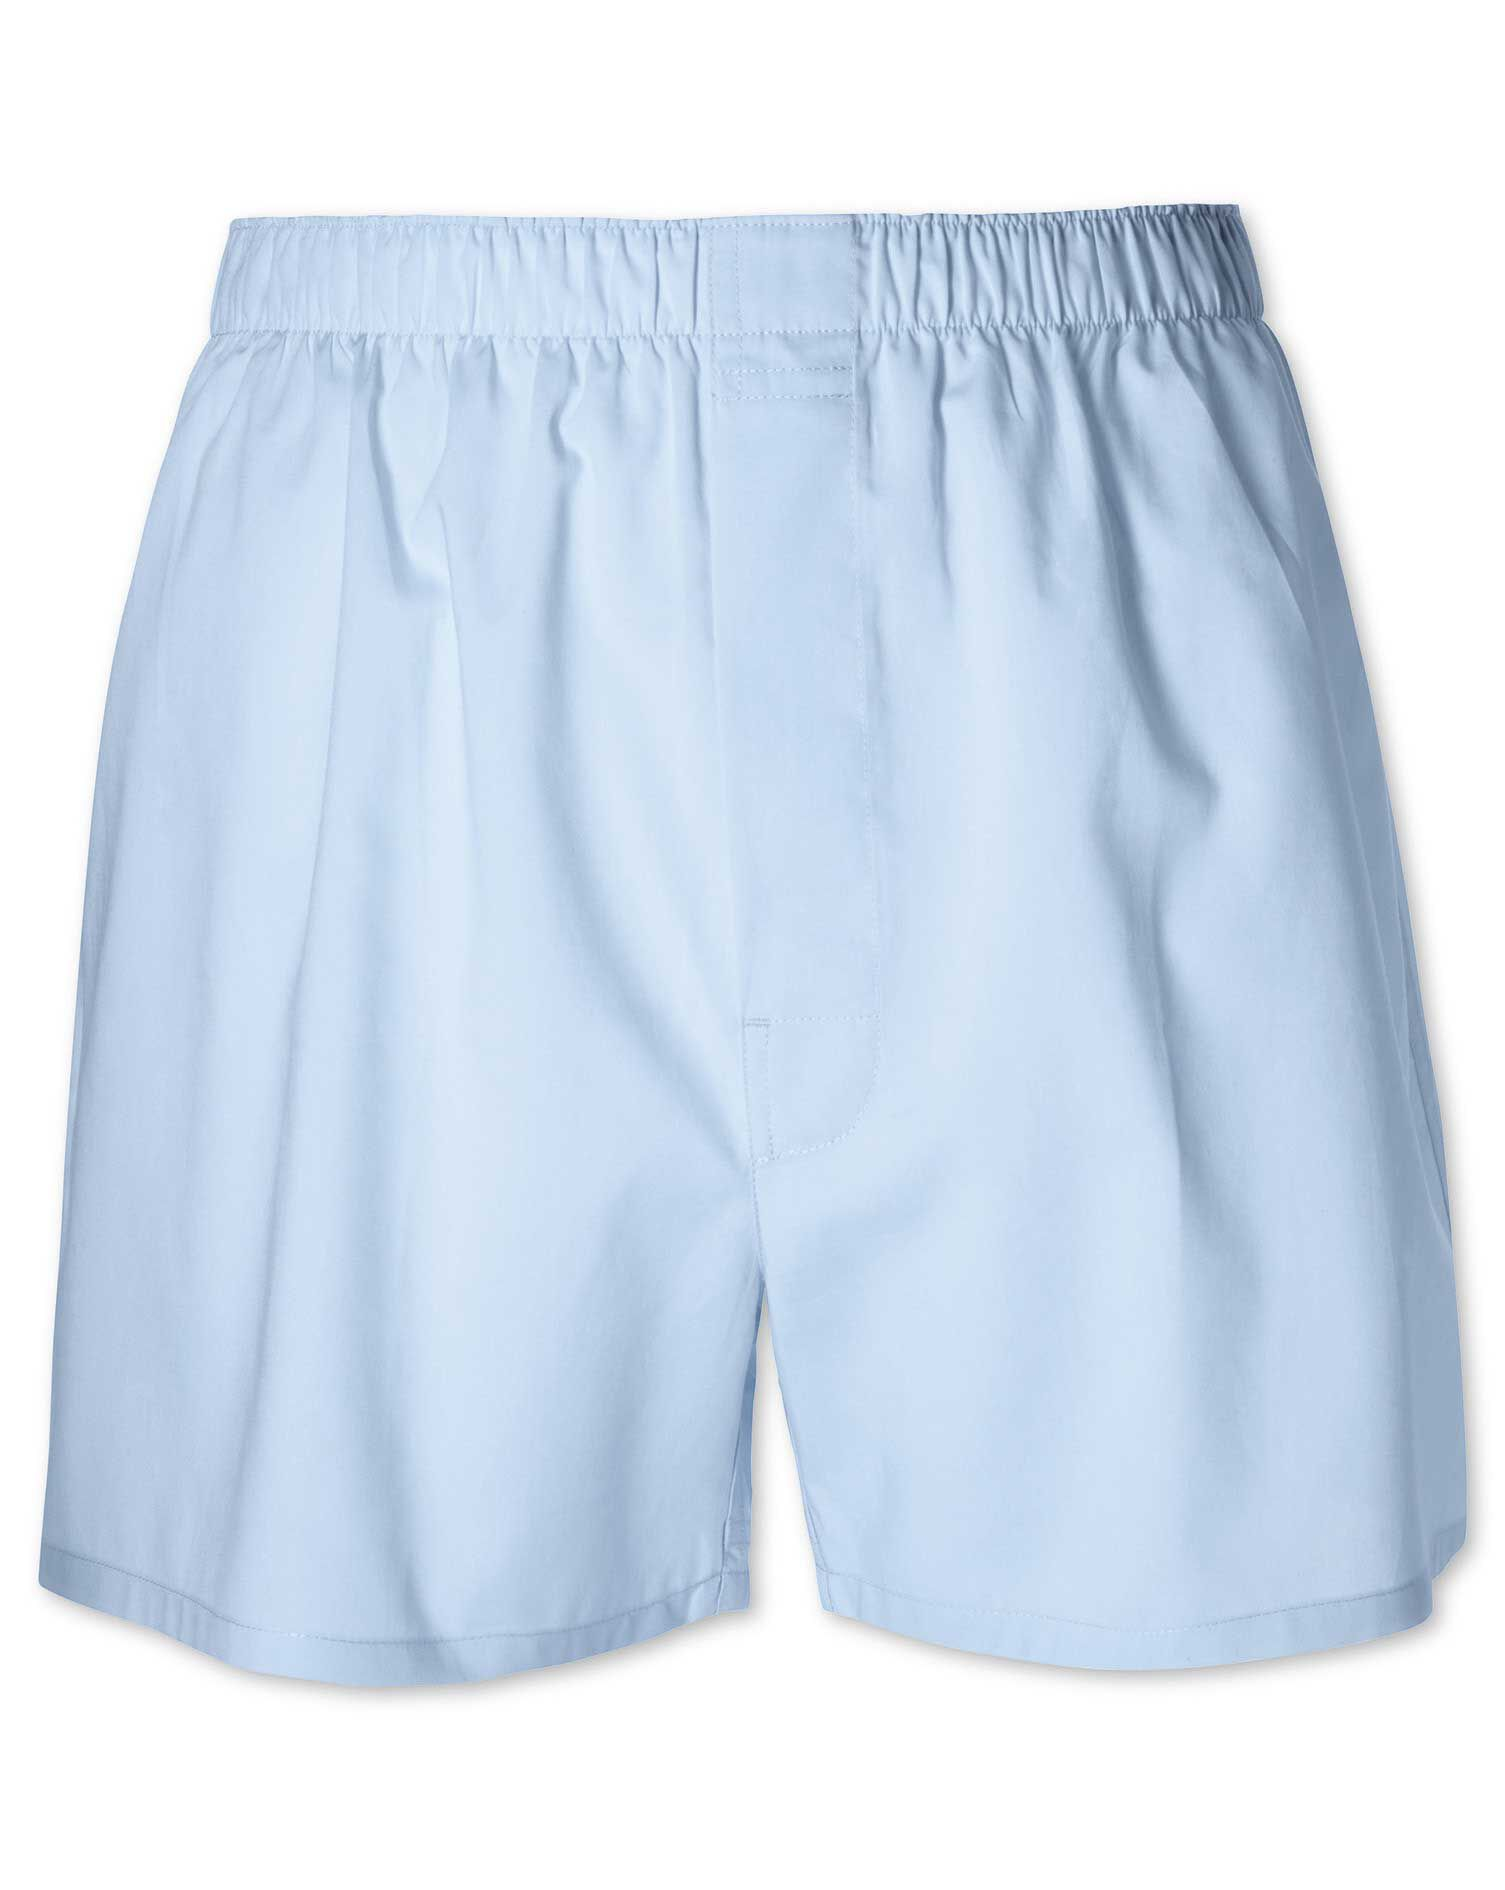 Sky Woven Boxers Size Large by Charles Tyrwhitt